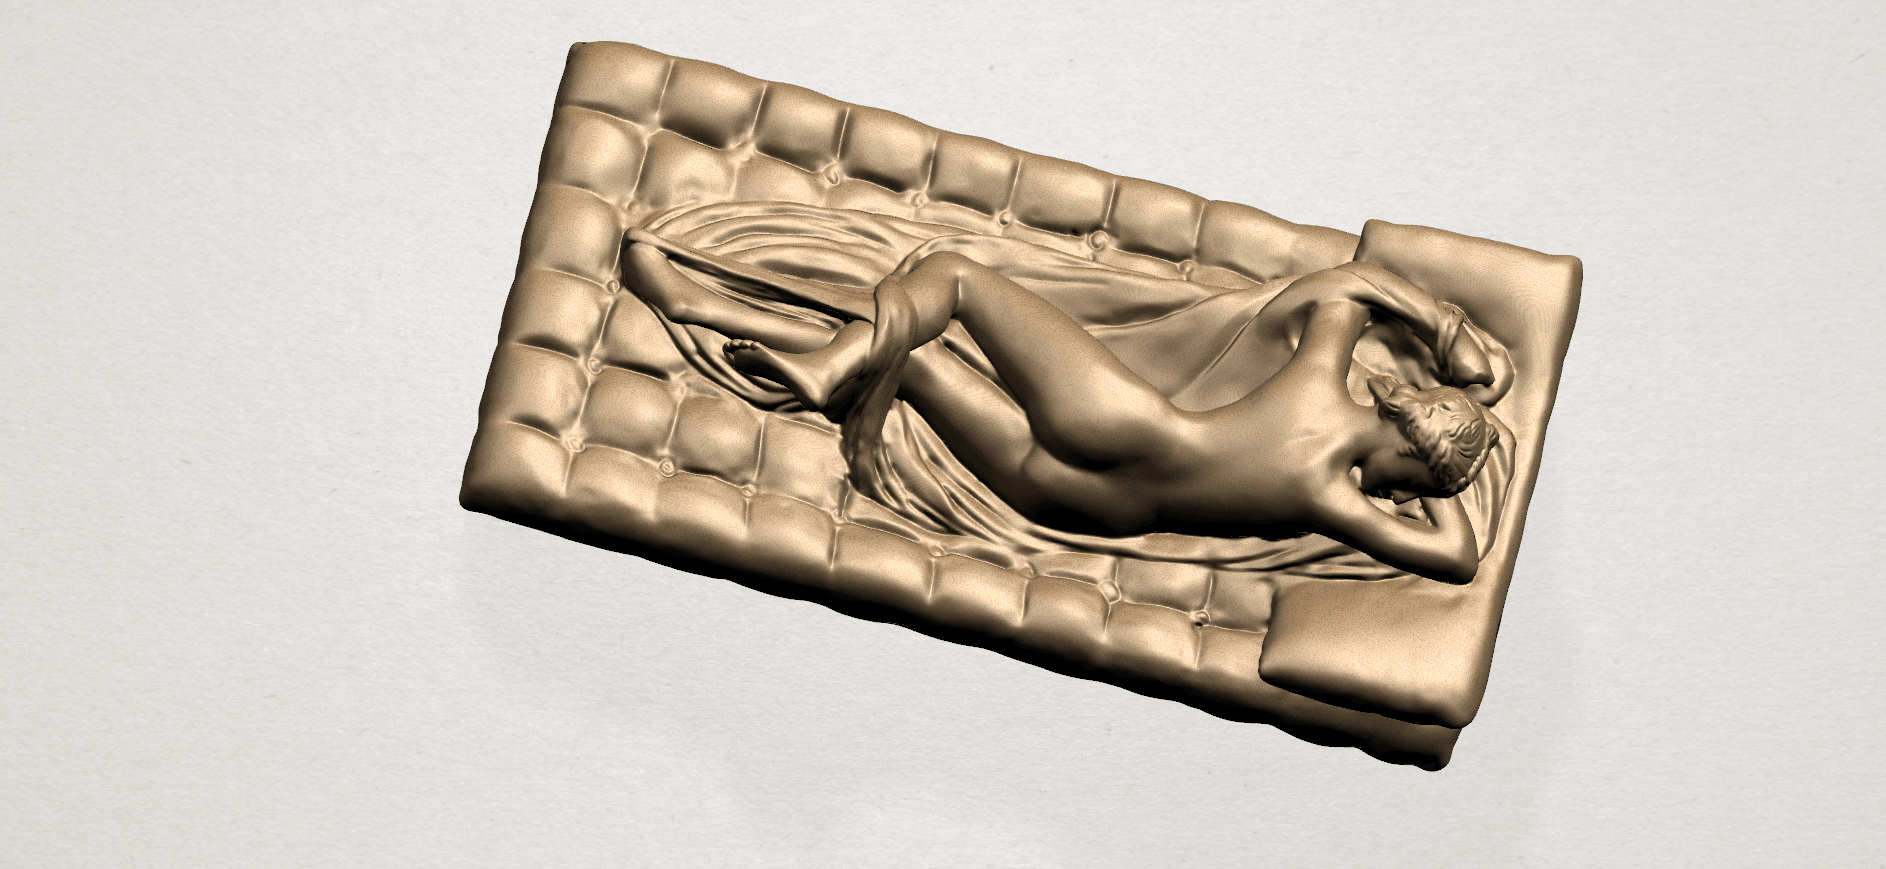 Naked Body Lying on Bed A06.png Download free STL file Naked Girl - Lying on Bed 02 • Object to 3D print, GeorgesNikkei